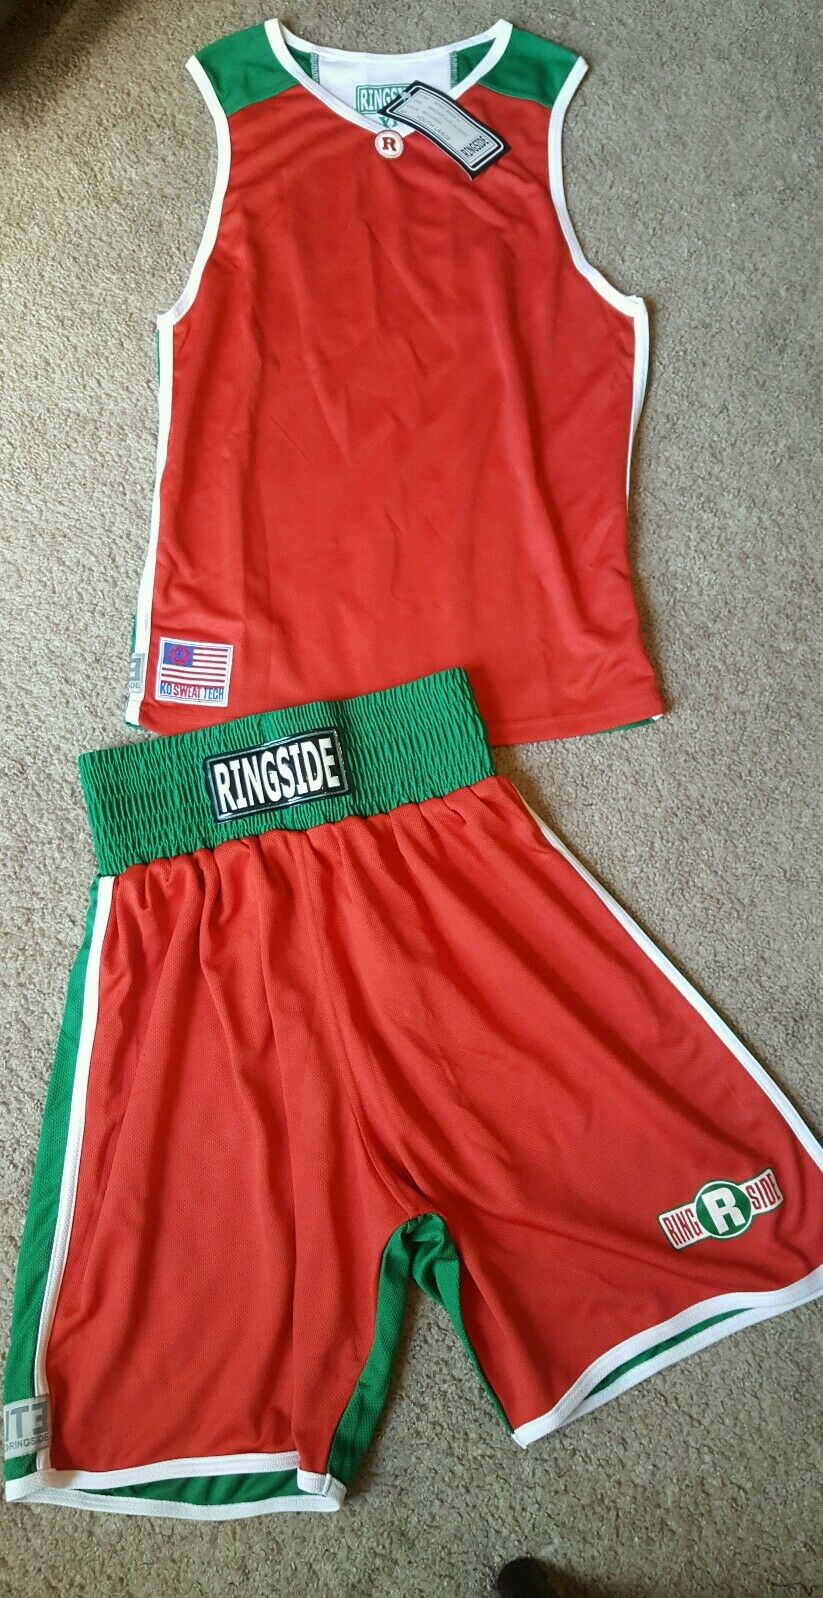 Ringside Youth Elite Outfit by Ringside, Youth Large